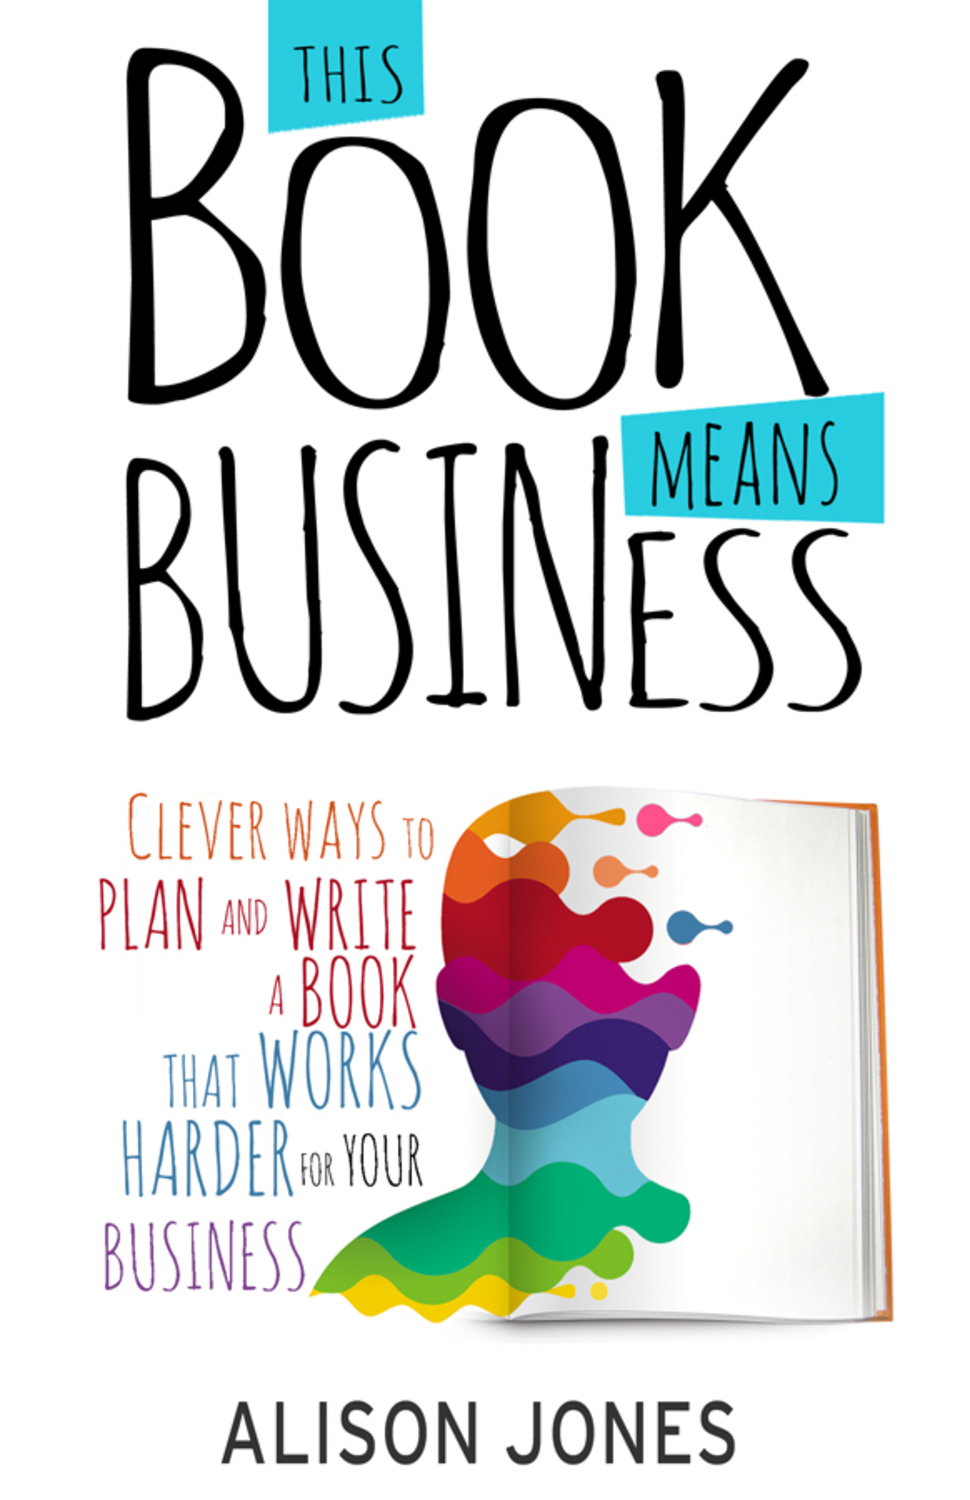 Book cover for This Book Means Business:  Clever ways to plan and write a book that works harder for your business a book by Alison  Jones